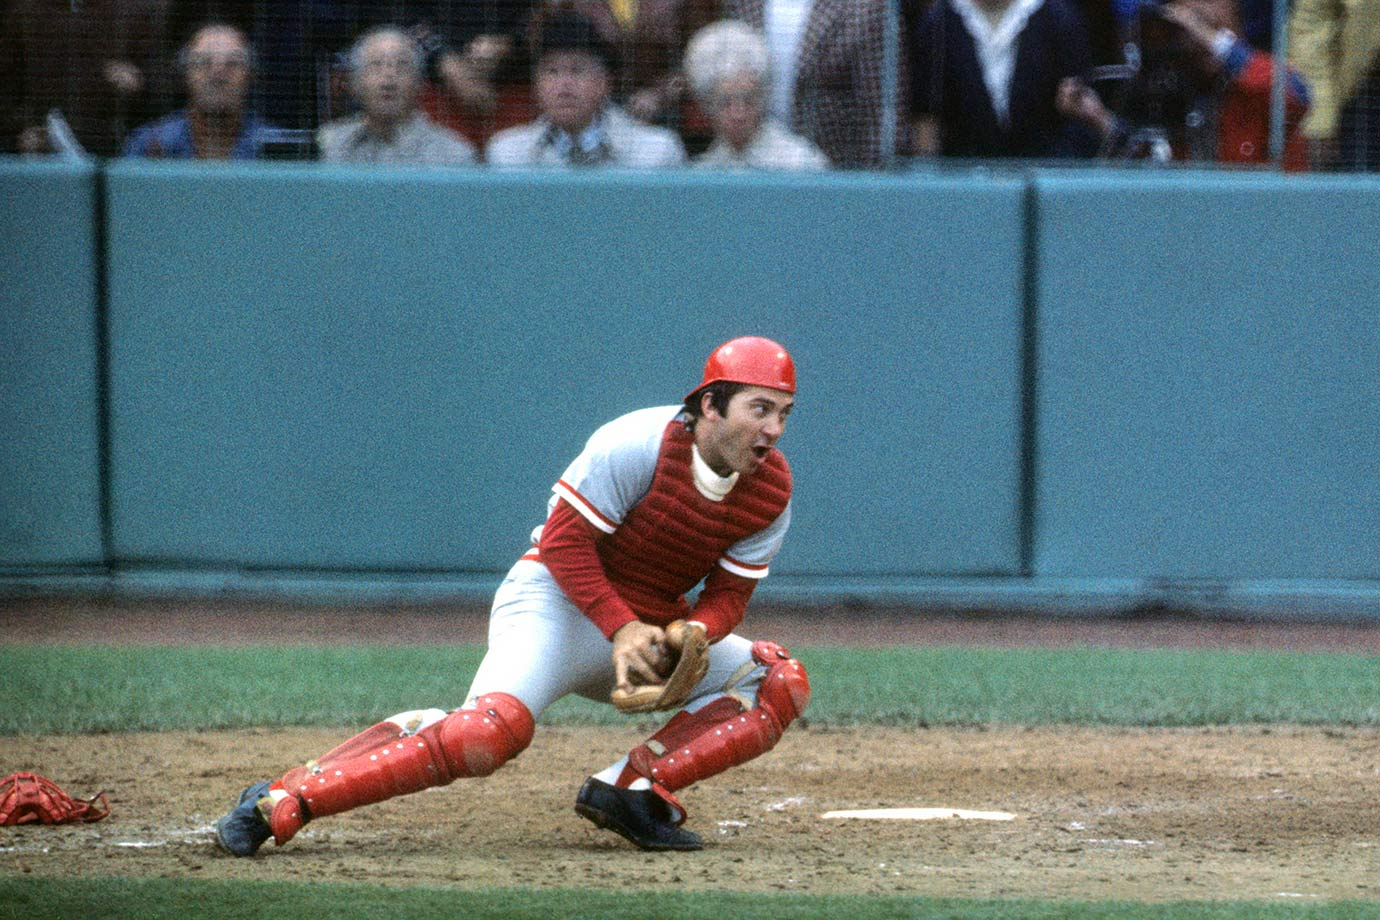 Oct. 11, 1975 — World Series, Game 1